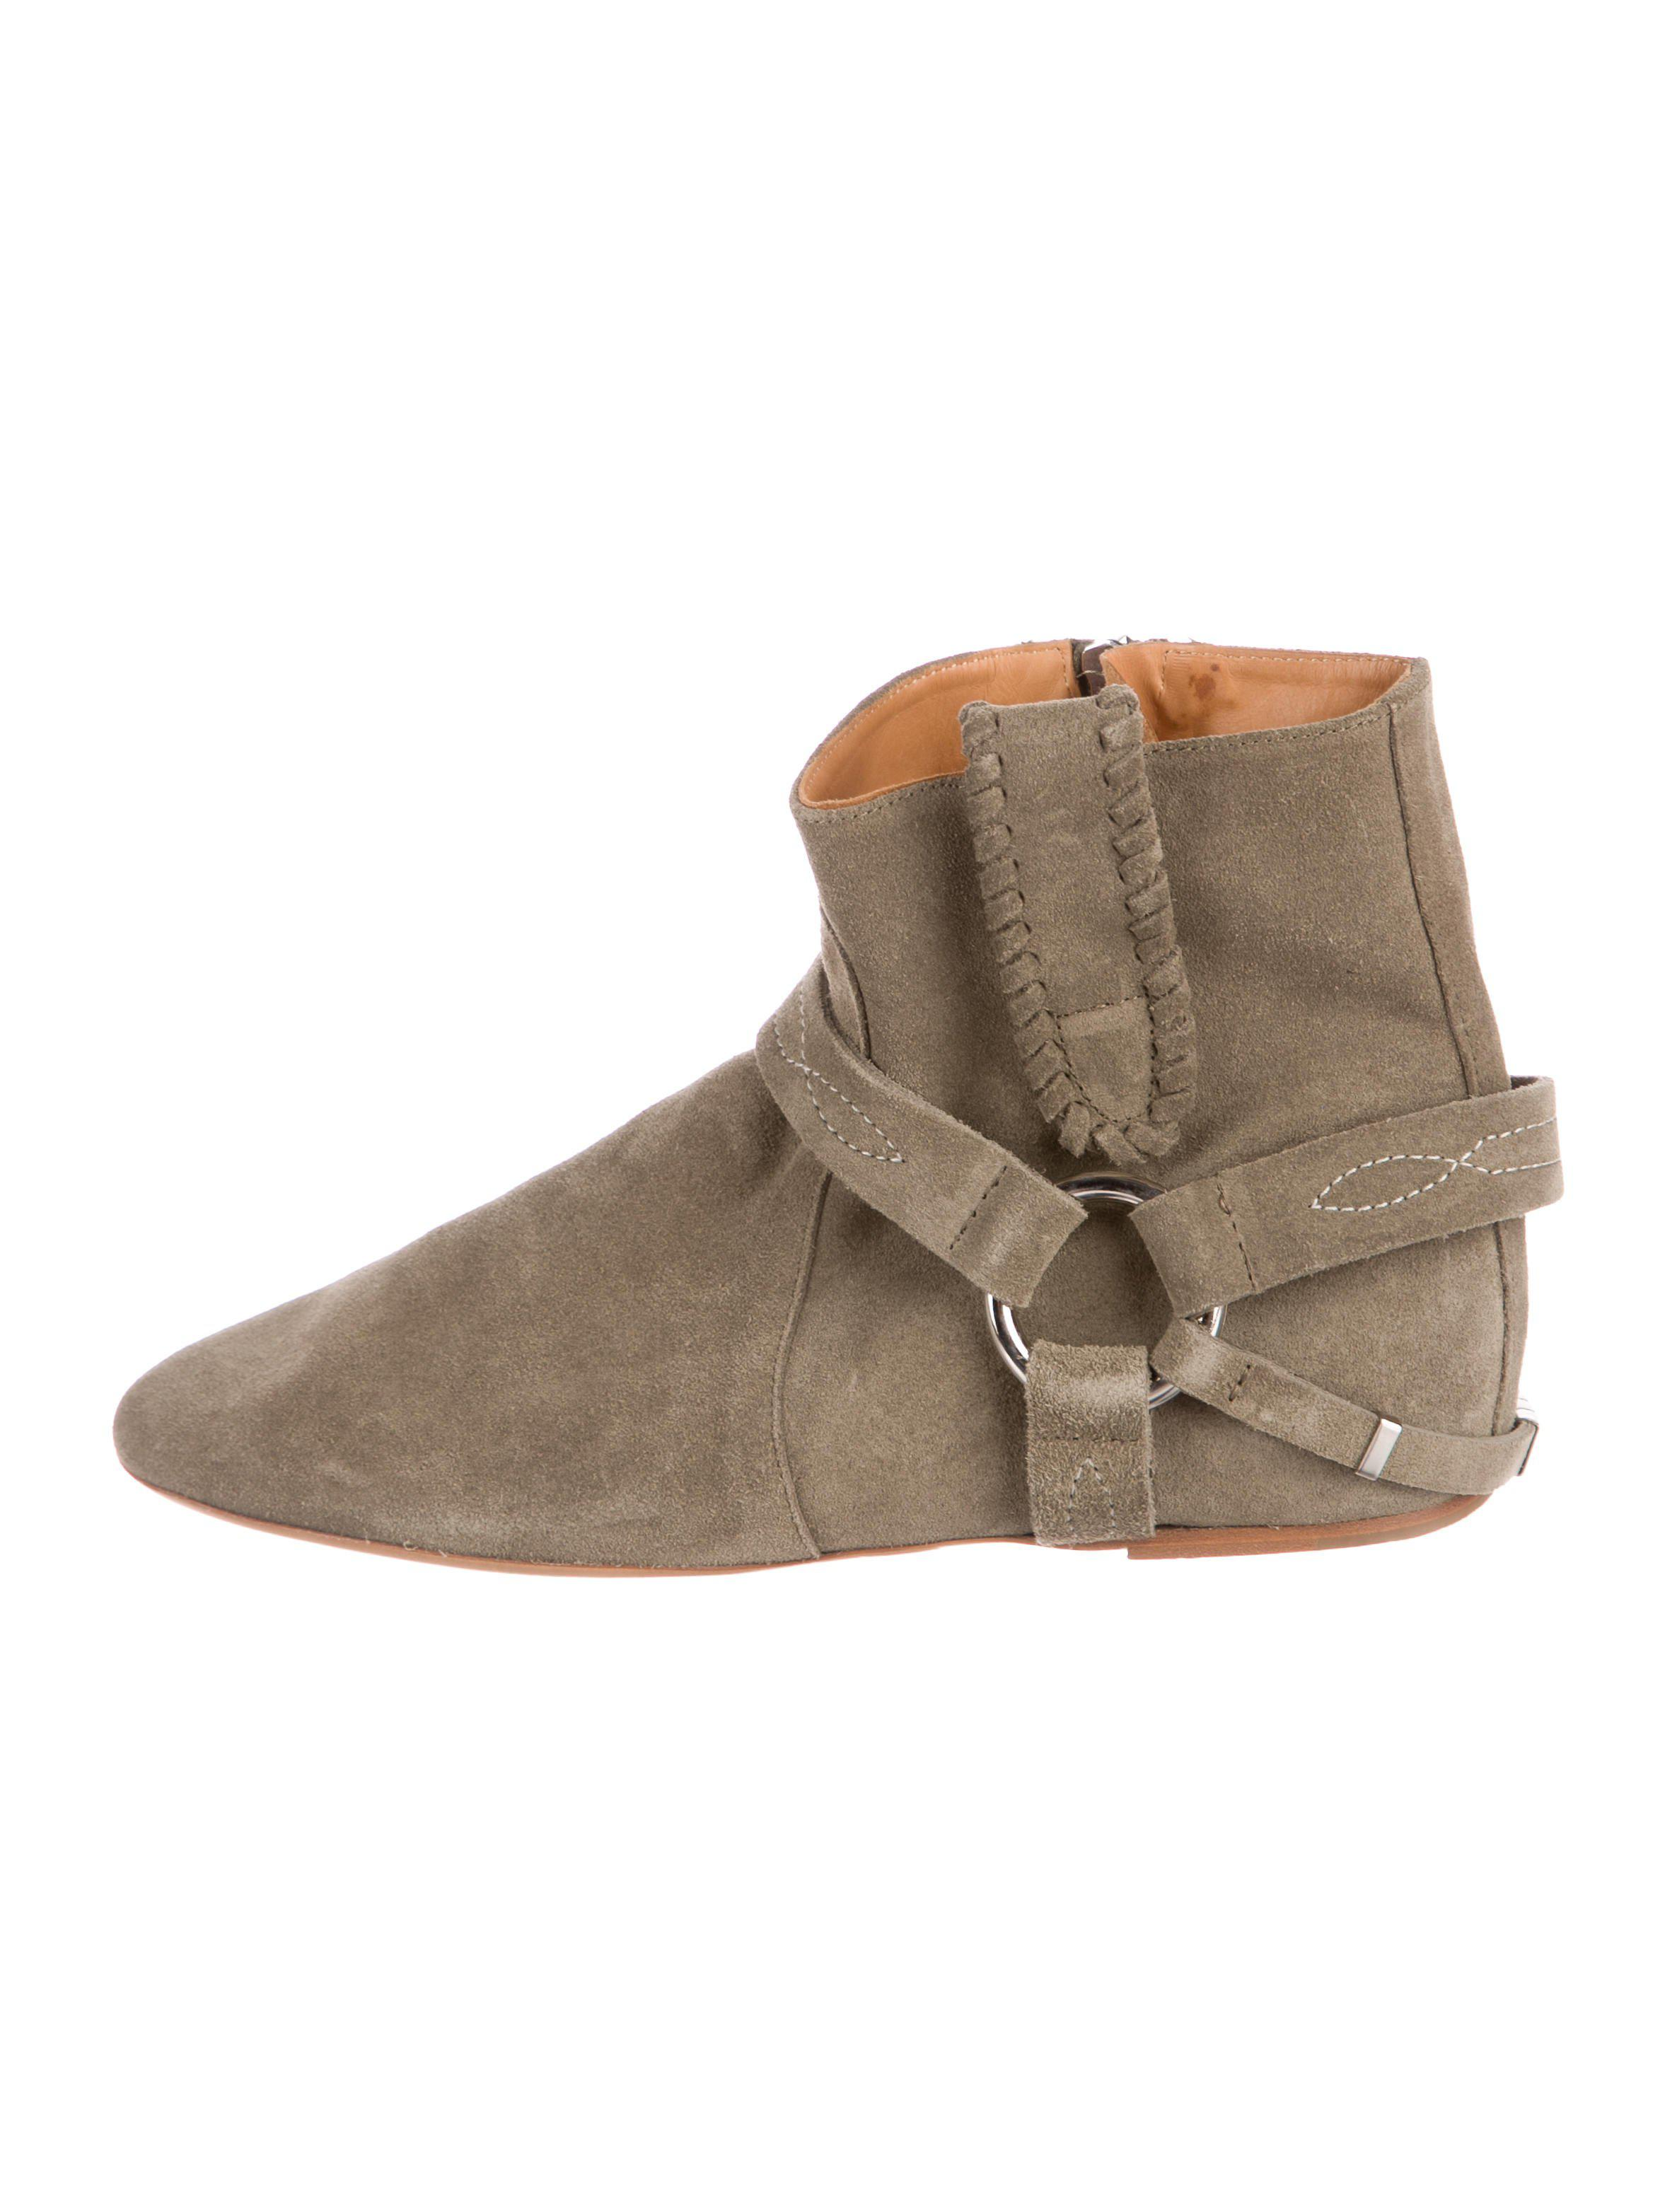 from china sale online discount cheapest price Étoile Isabel Marant Jenny Suede Booties brand new unisex cheap price original cheap price mfuBlGJKAY